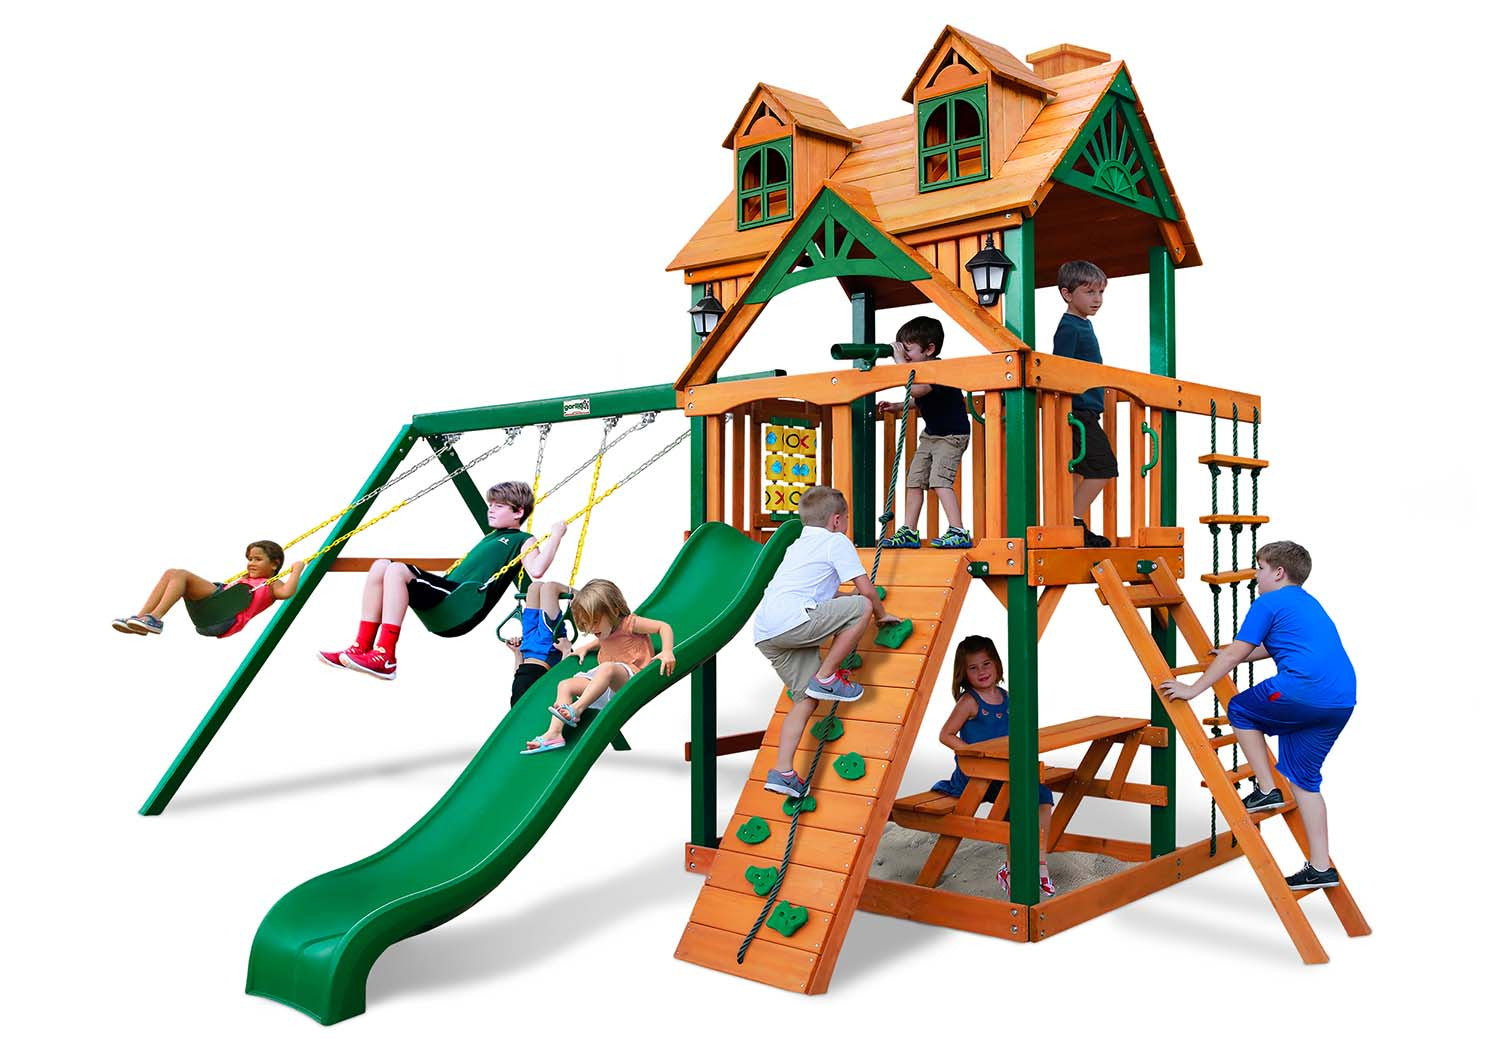 I Just Bought A Wooden Swing Set Over the Internet - Now What?  sc 1 st  NJ Swingsets & Vinyl vs Sunbrella vs Wood Roof on a Swing Set - NJ Swingsets